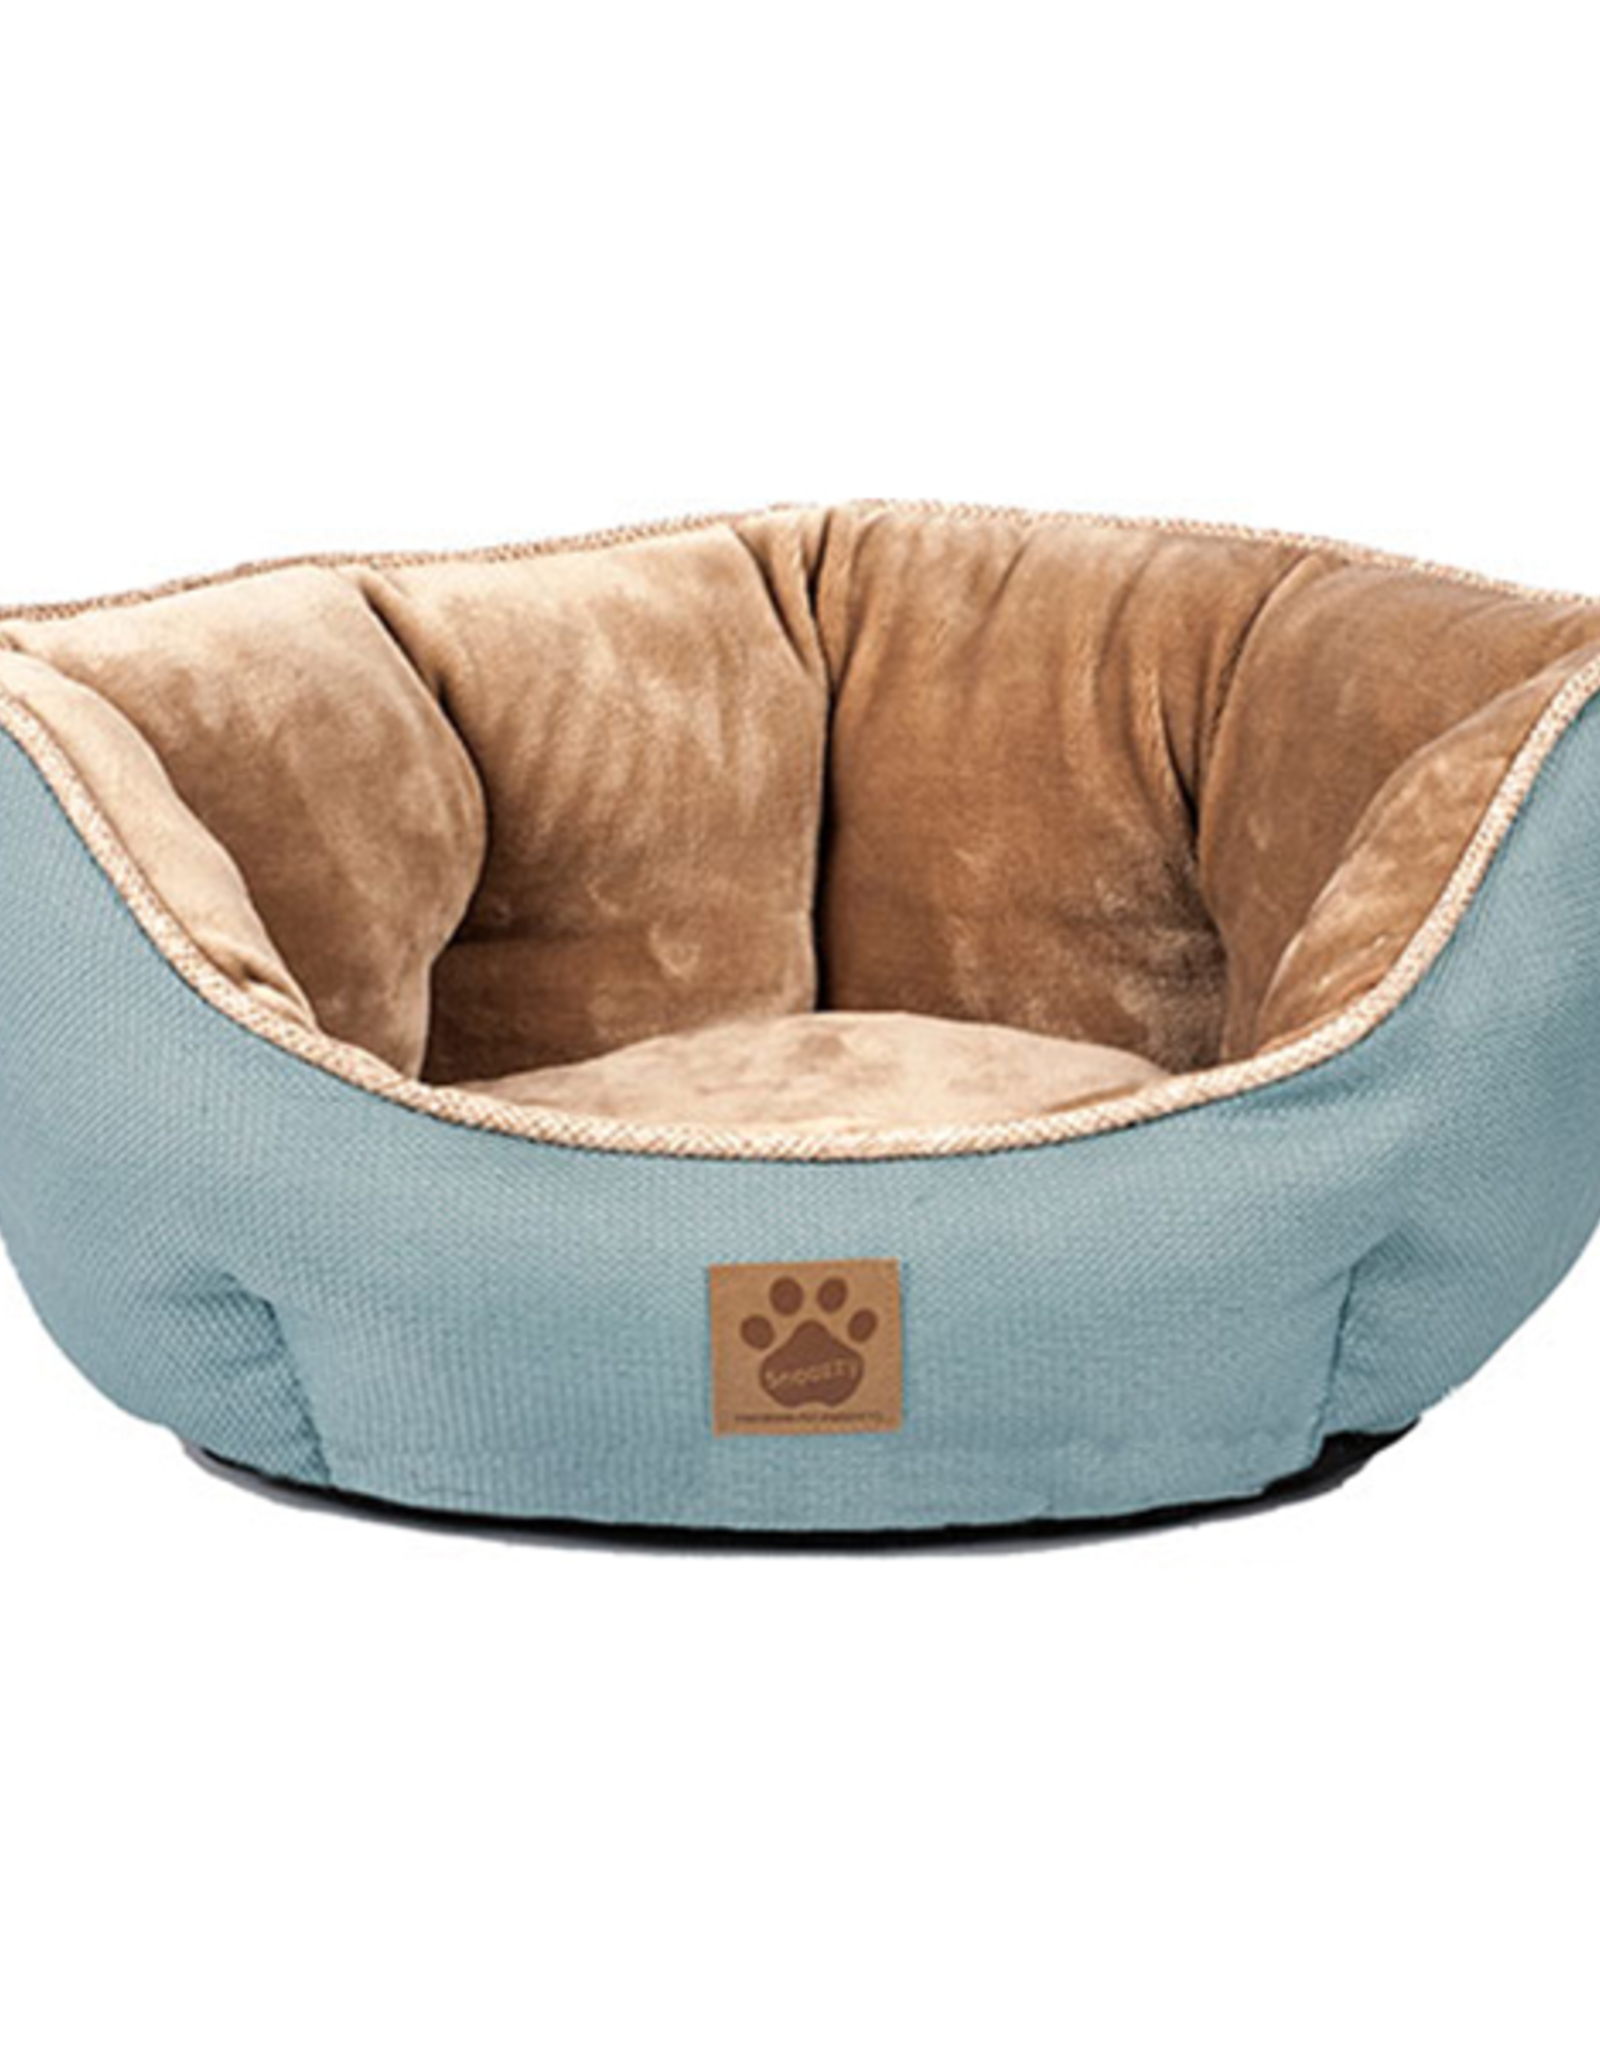 Snoozzy Snz Rustic Elegance Clamshell Bed Teal 19x17x9